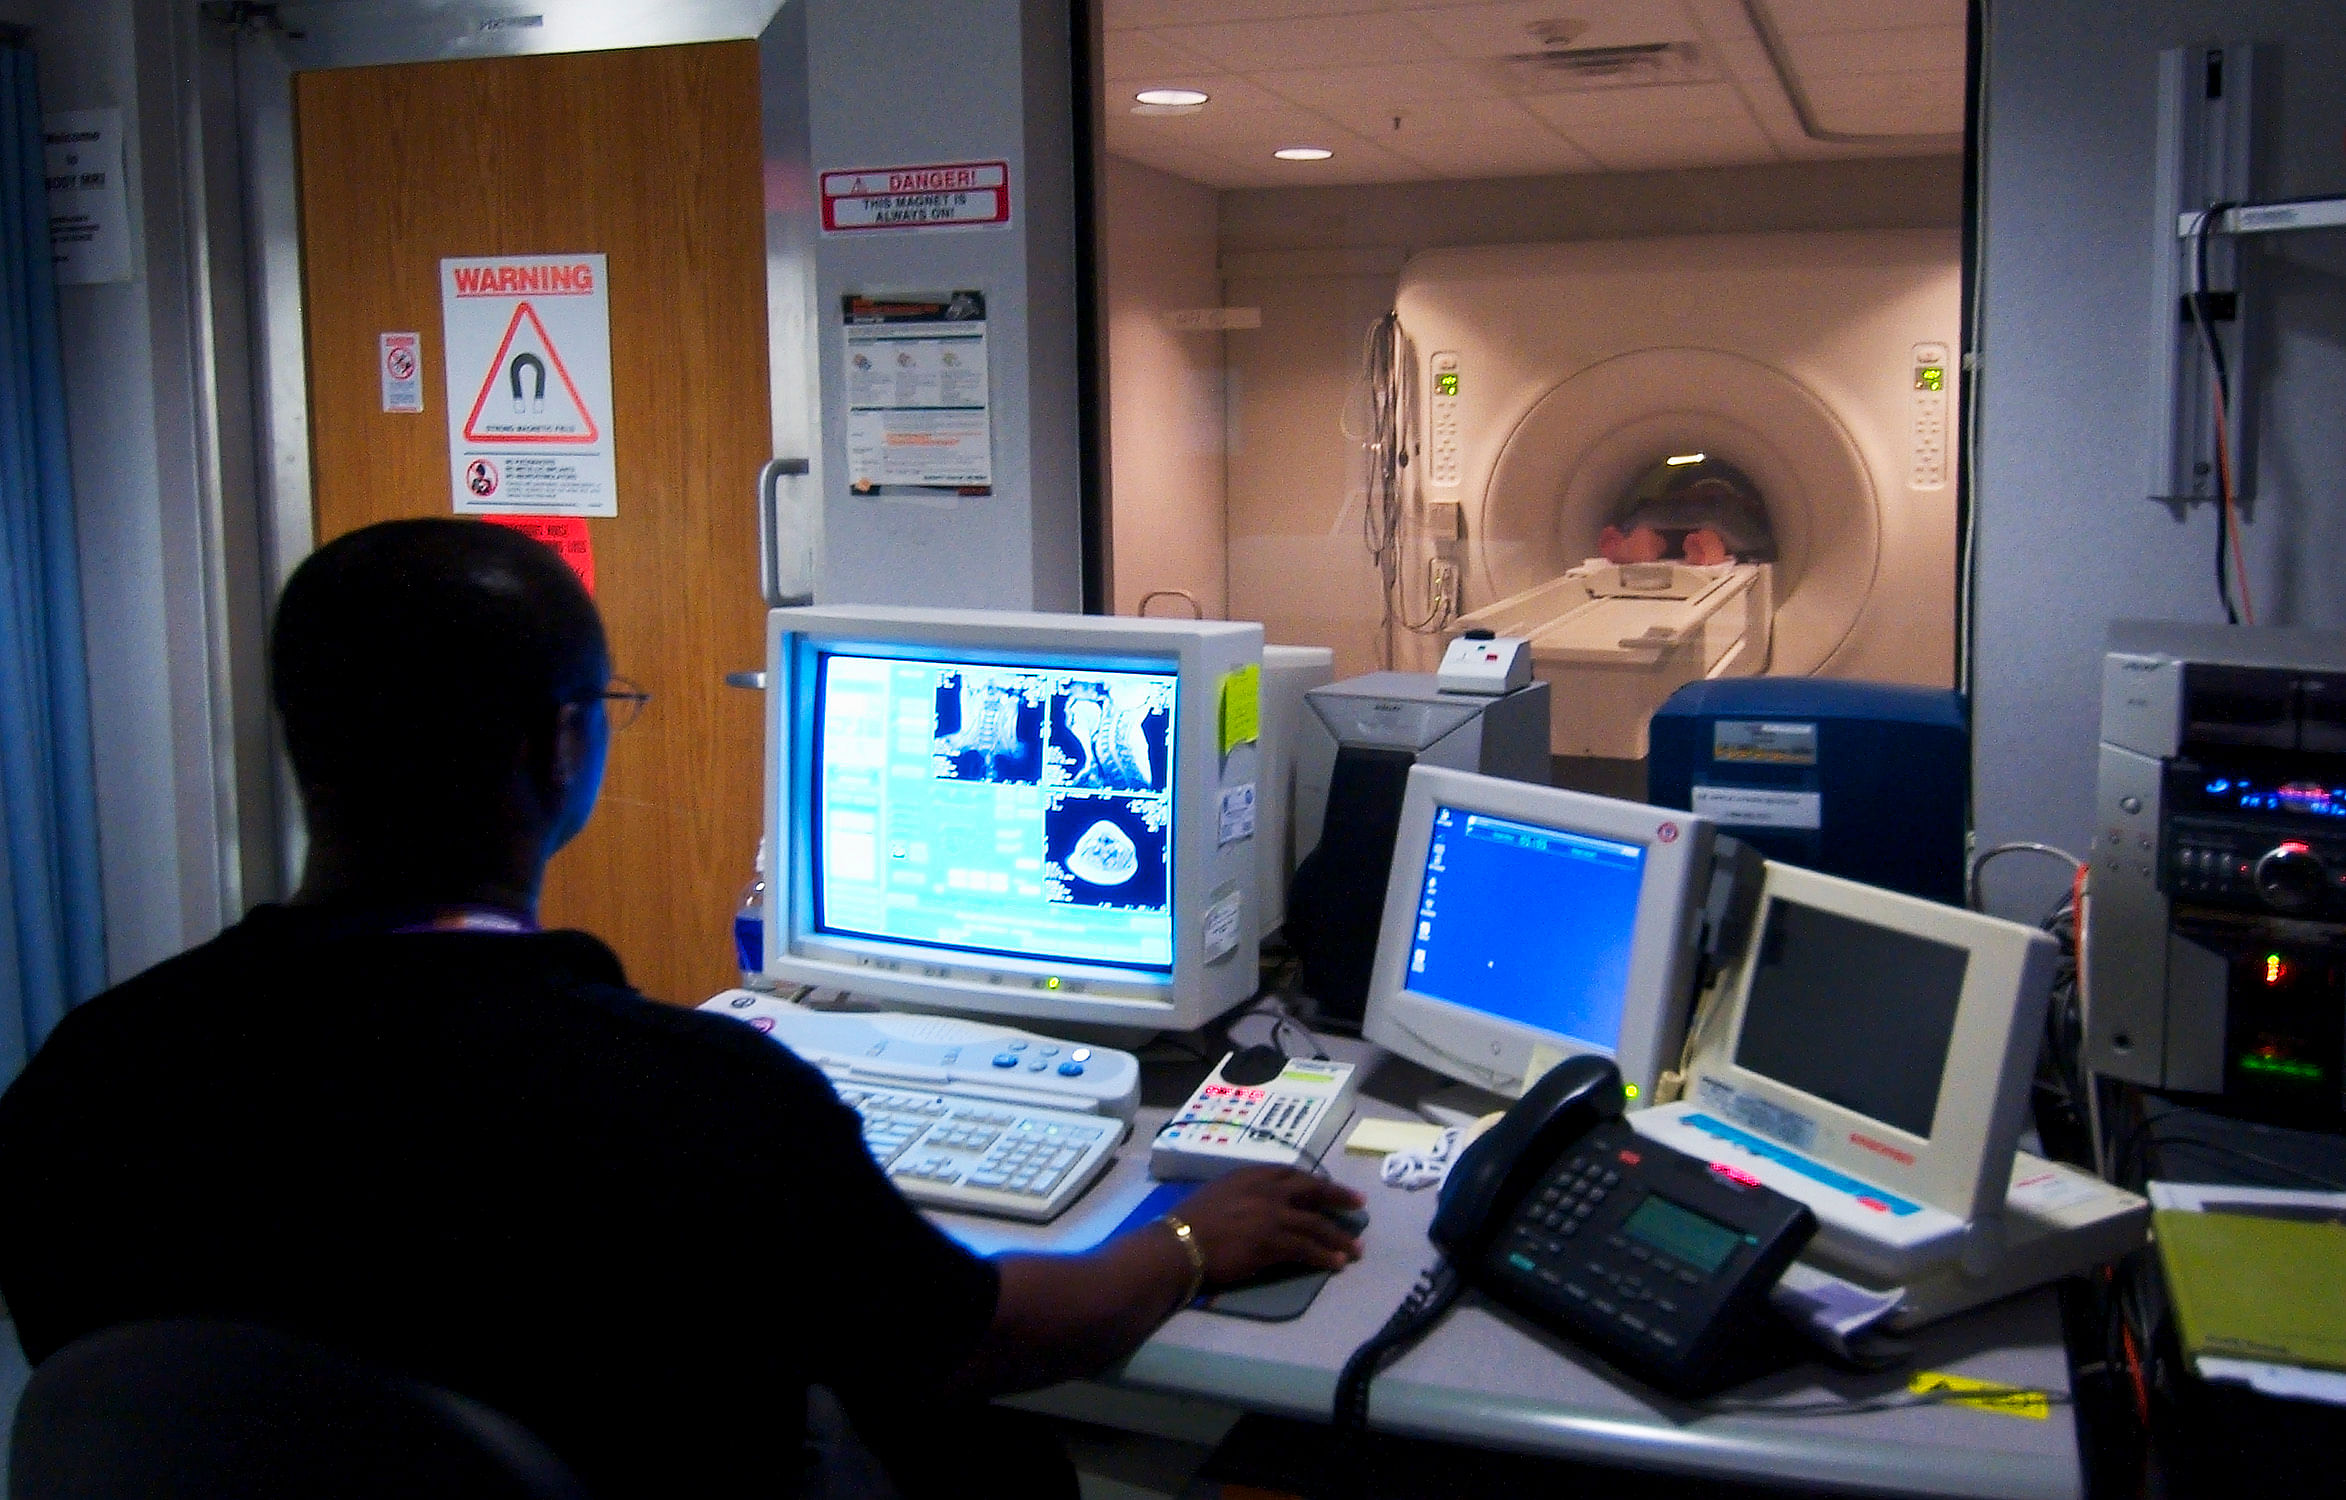 030819-N-9593R-228 National Naval Medical Center, Bethesda, Md., (Aug. 19, 2003) -- Civilian technician, Jose Araujo watches as a patient goes through a Magnetic Resonance Imaging, (MRI) machine at the National Naval Medical Center in Bethesda, Maryland. U.S.Navy photo by Chief Warrant Officer 4 Seth Rossman. (RELEASED)